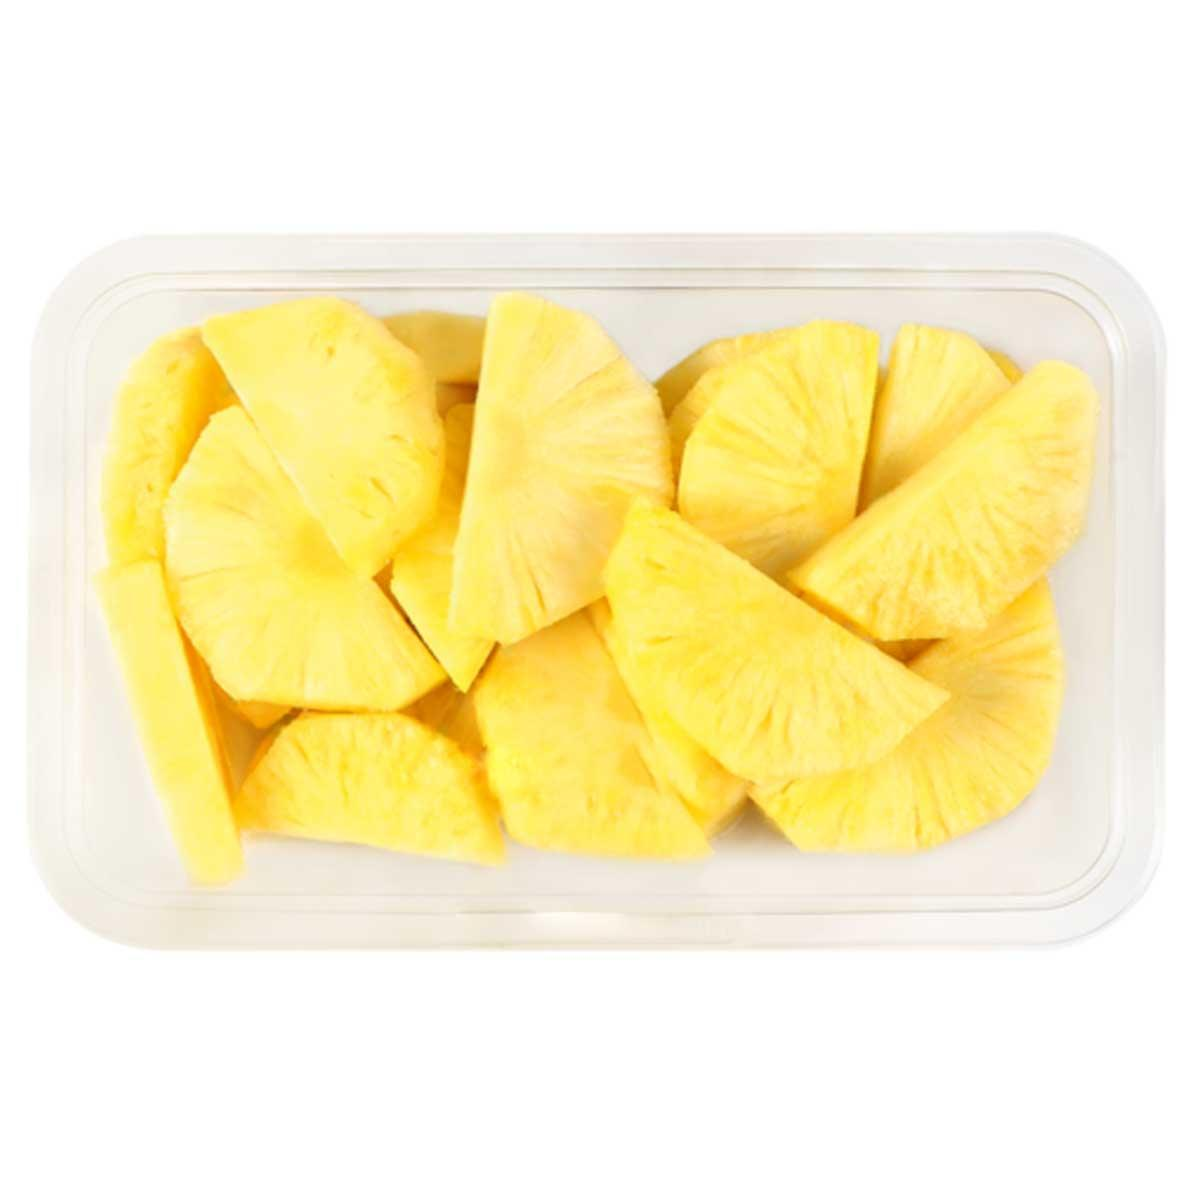 Fresh Pineapple Slices